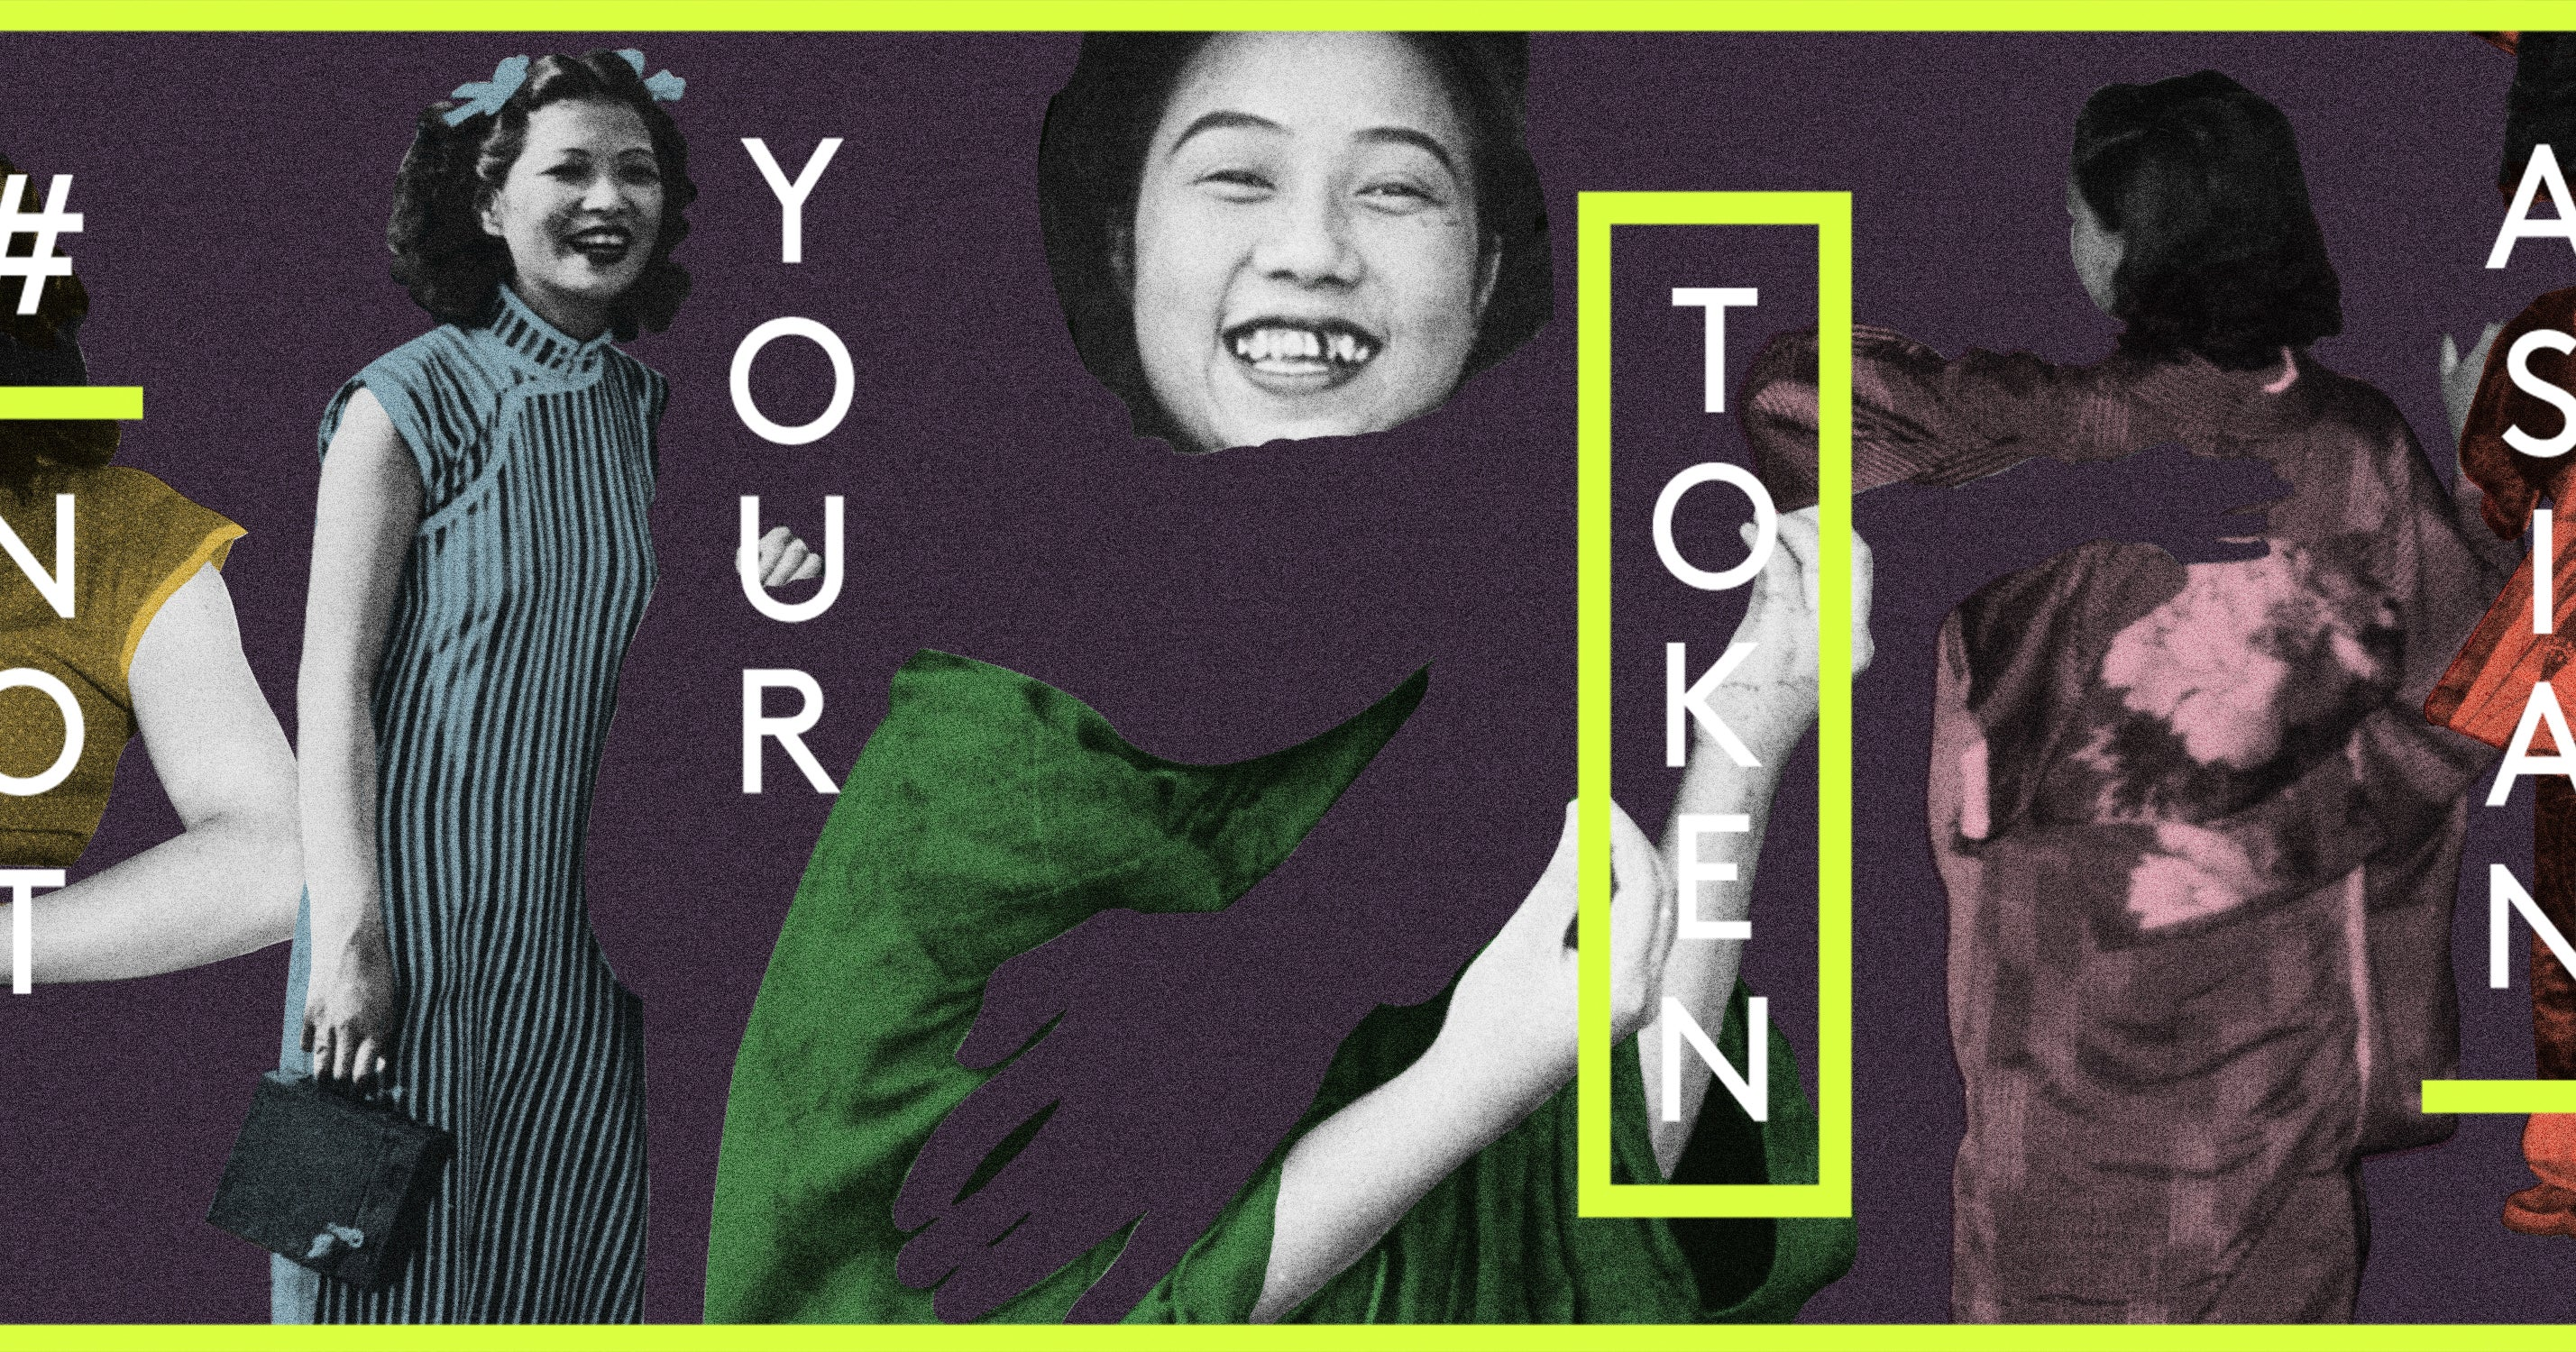 Inside The Exhibition Box: How White Sexual Imperialism Has Trapped Asian American Women